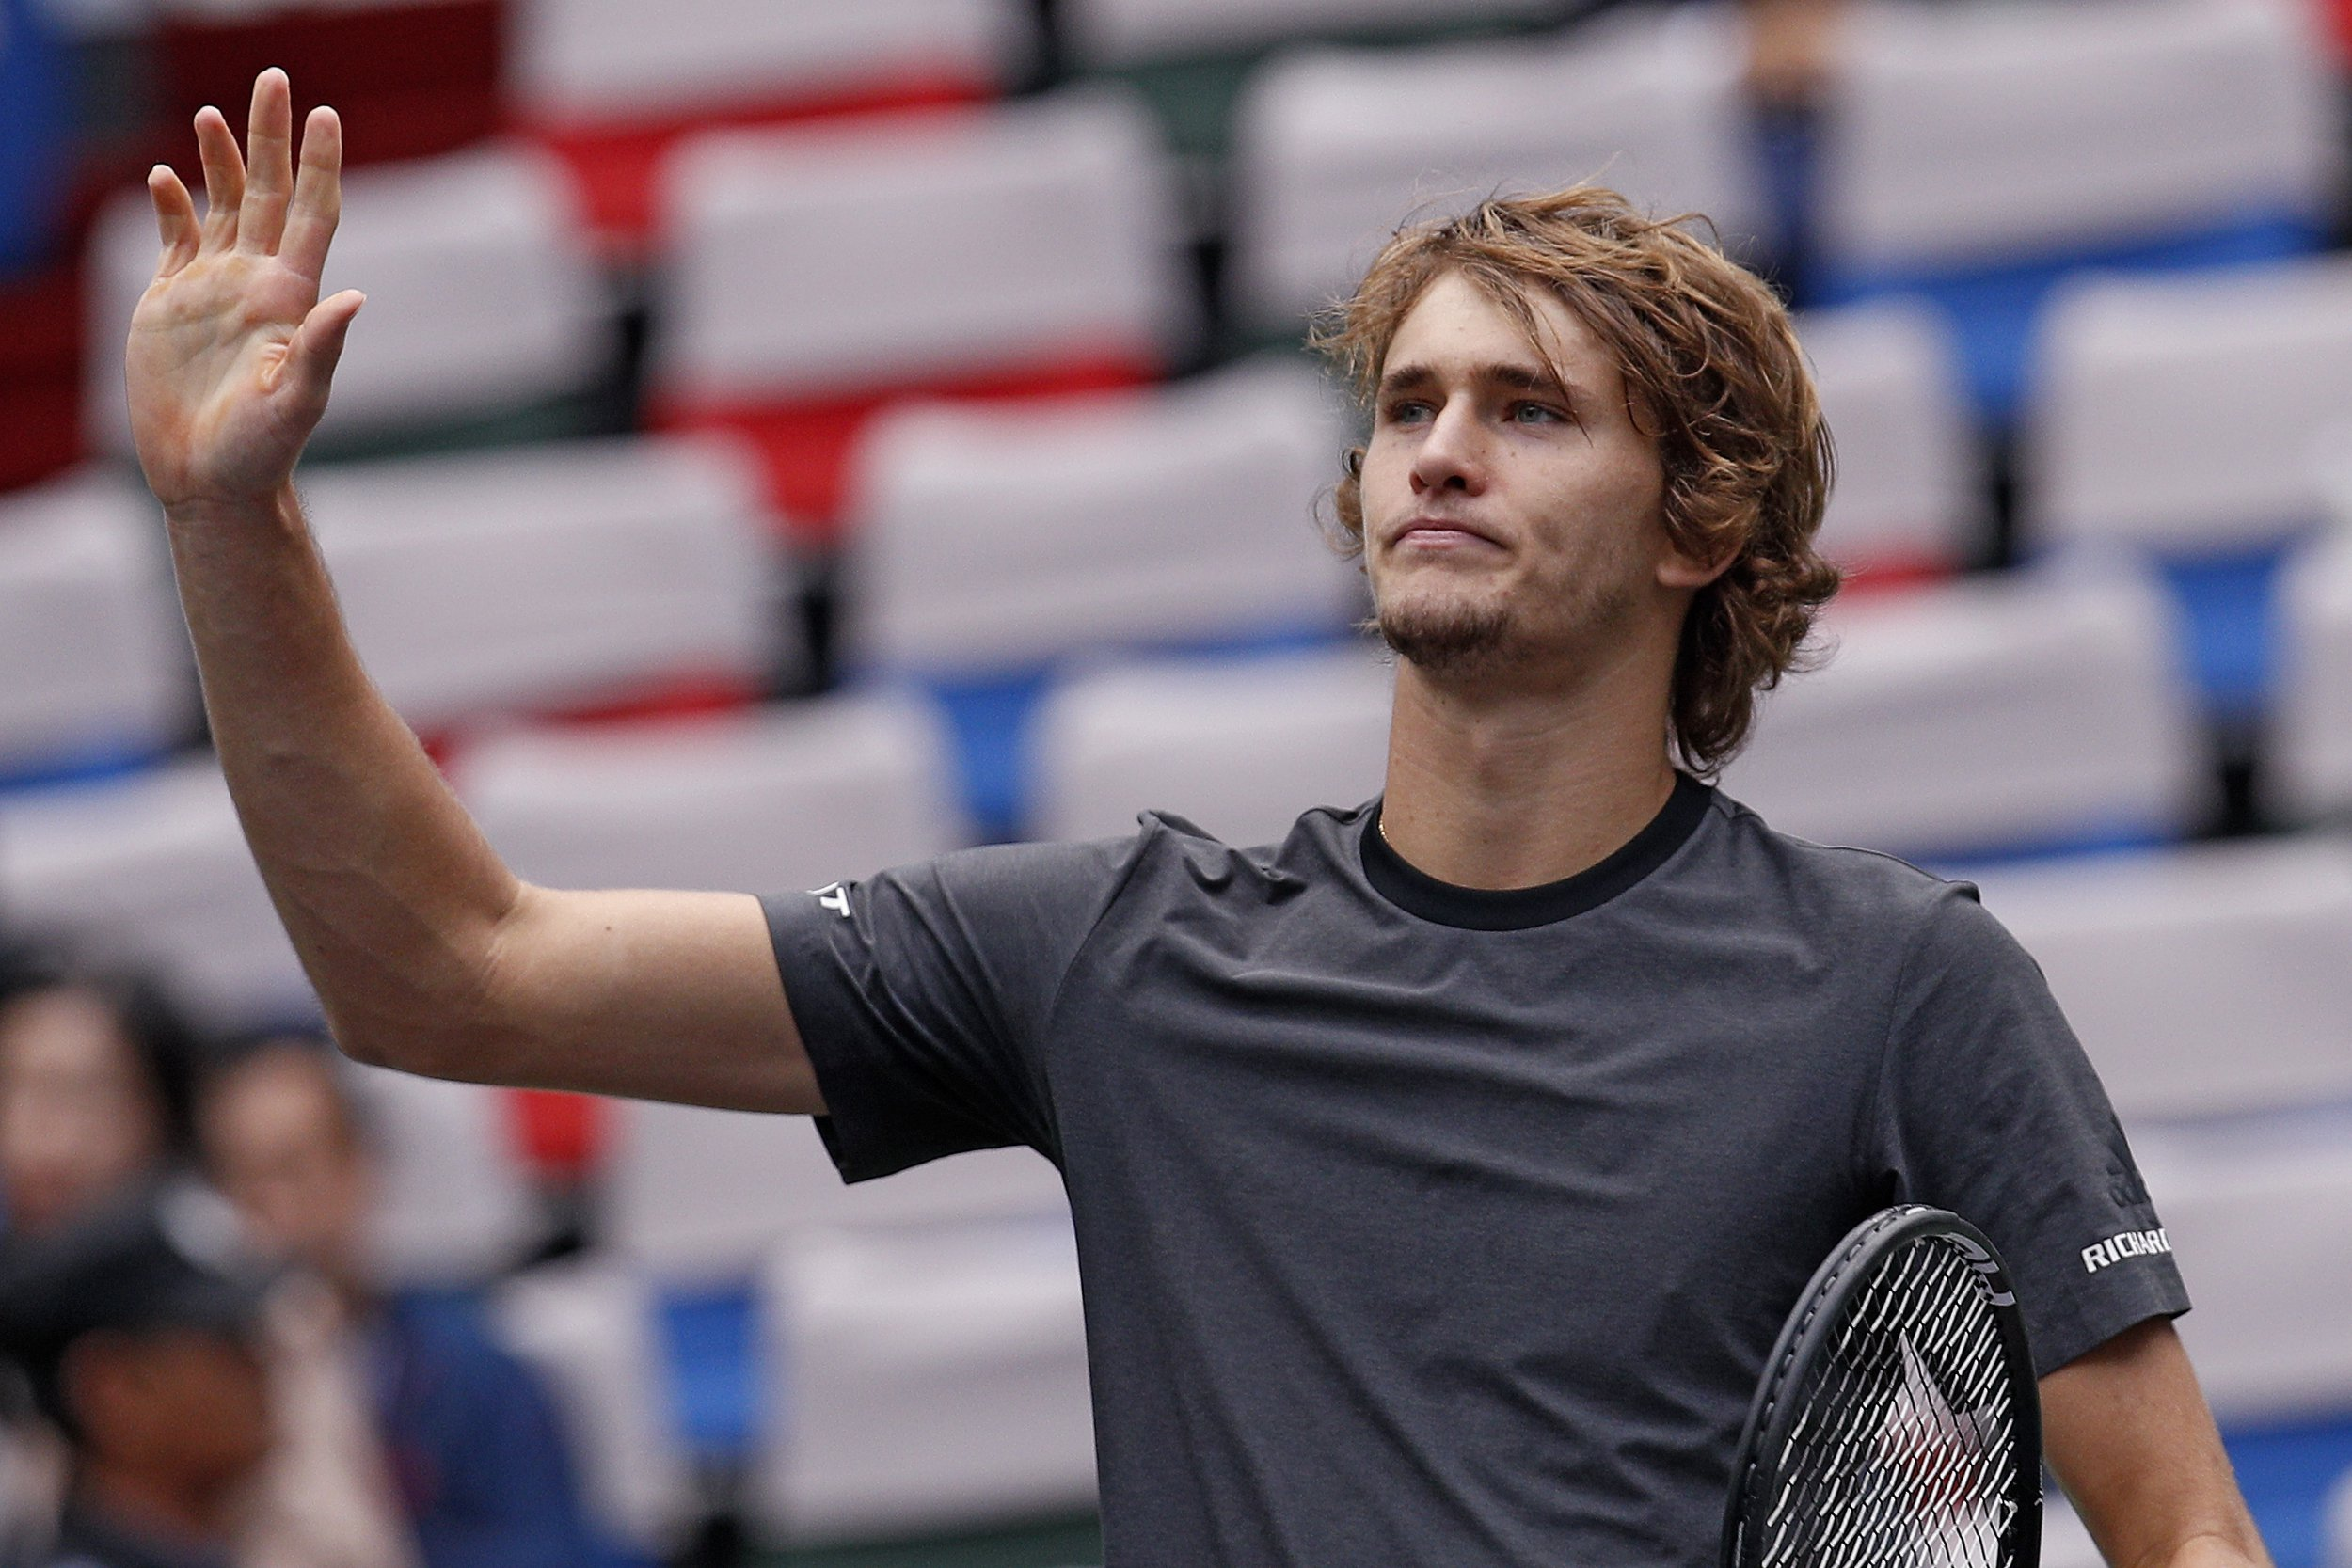 Alexander Zverev of Germany gestures to the spectators after winning his men's singles quarterfinals match against Kyle Edmund of Britain in the Shanghai Masters tennis tournament at Qizhong Forest Sports City Tennis Center in Shanghai, China, Friday, Oct. 12, 2018. (AP Photo/Andy Wong)